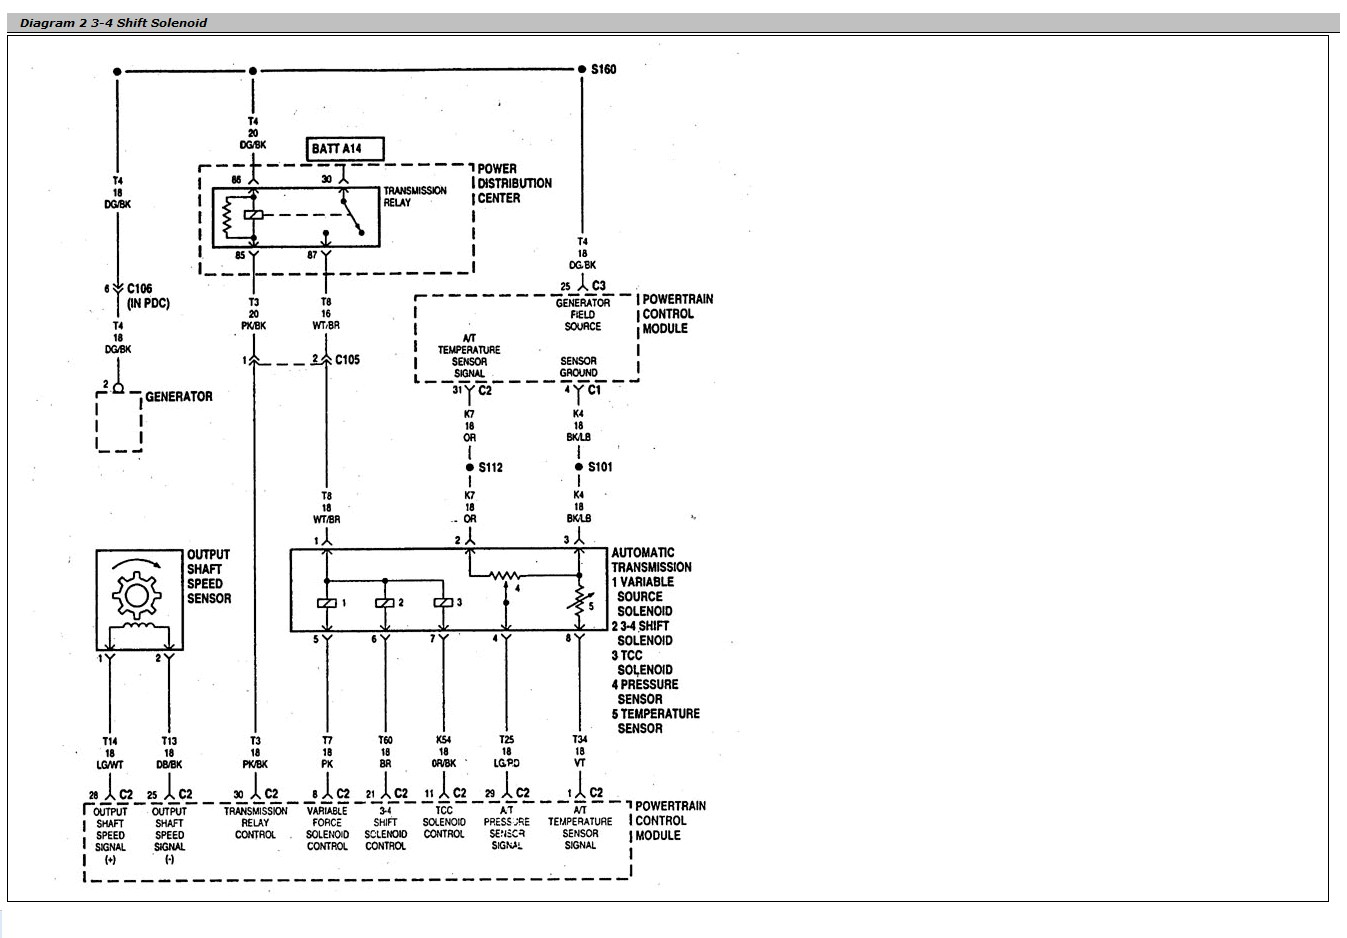 hight resolution of 2001 dodge ram 1500 transmission wiring diagram wiring diagram centre 2006 dodge ram 1500 transmission parts diagram dodge ram 1500 transmission diagram